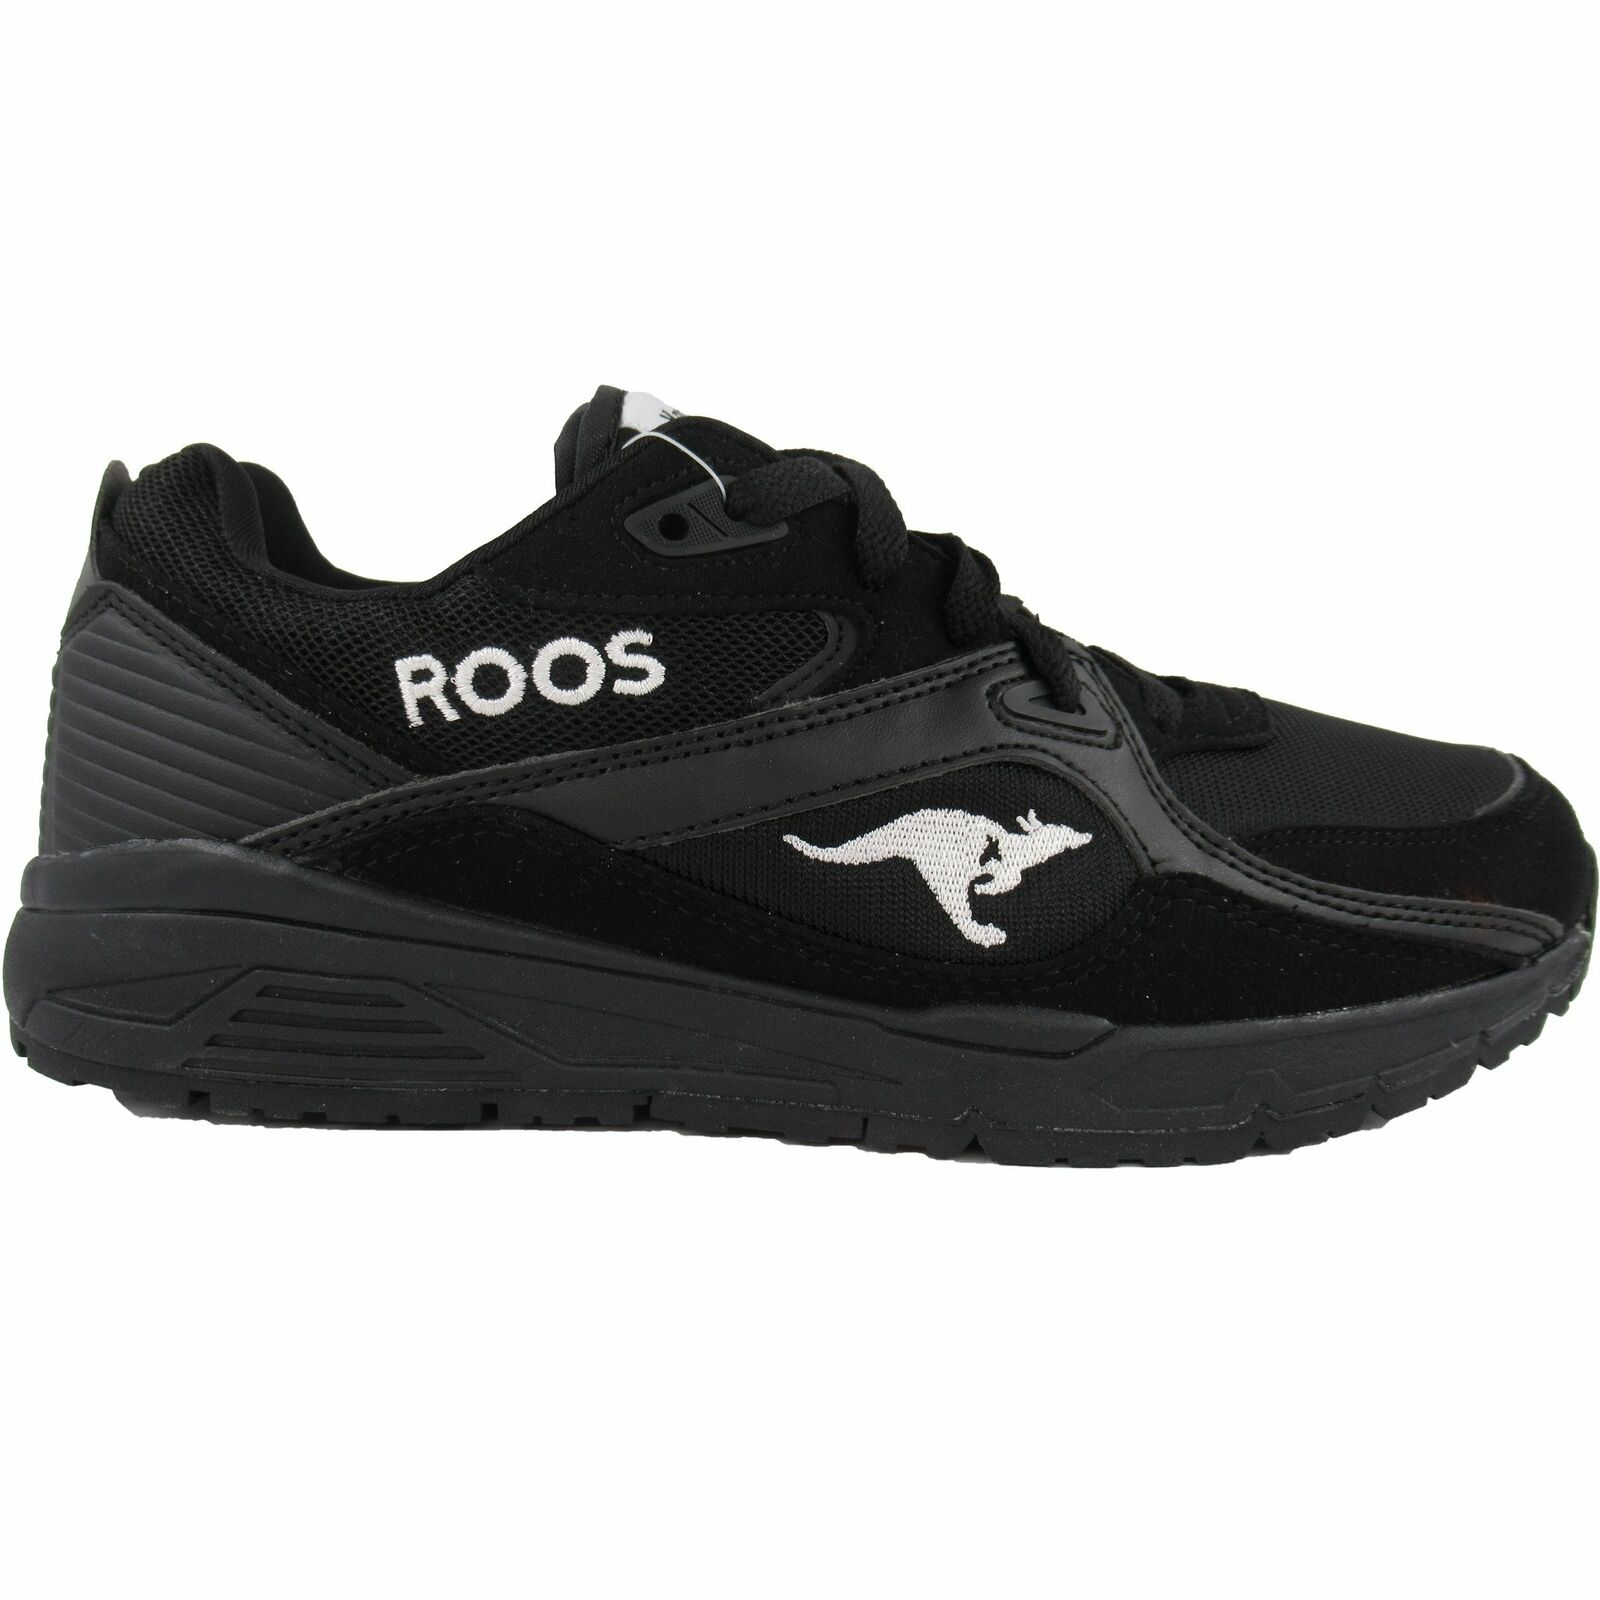 KangaROOS Roos Mens Runaway Pocket Tongue Retro Casual Classic Athletic Shoes 1